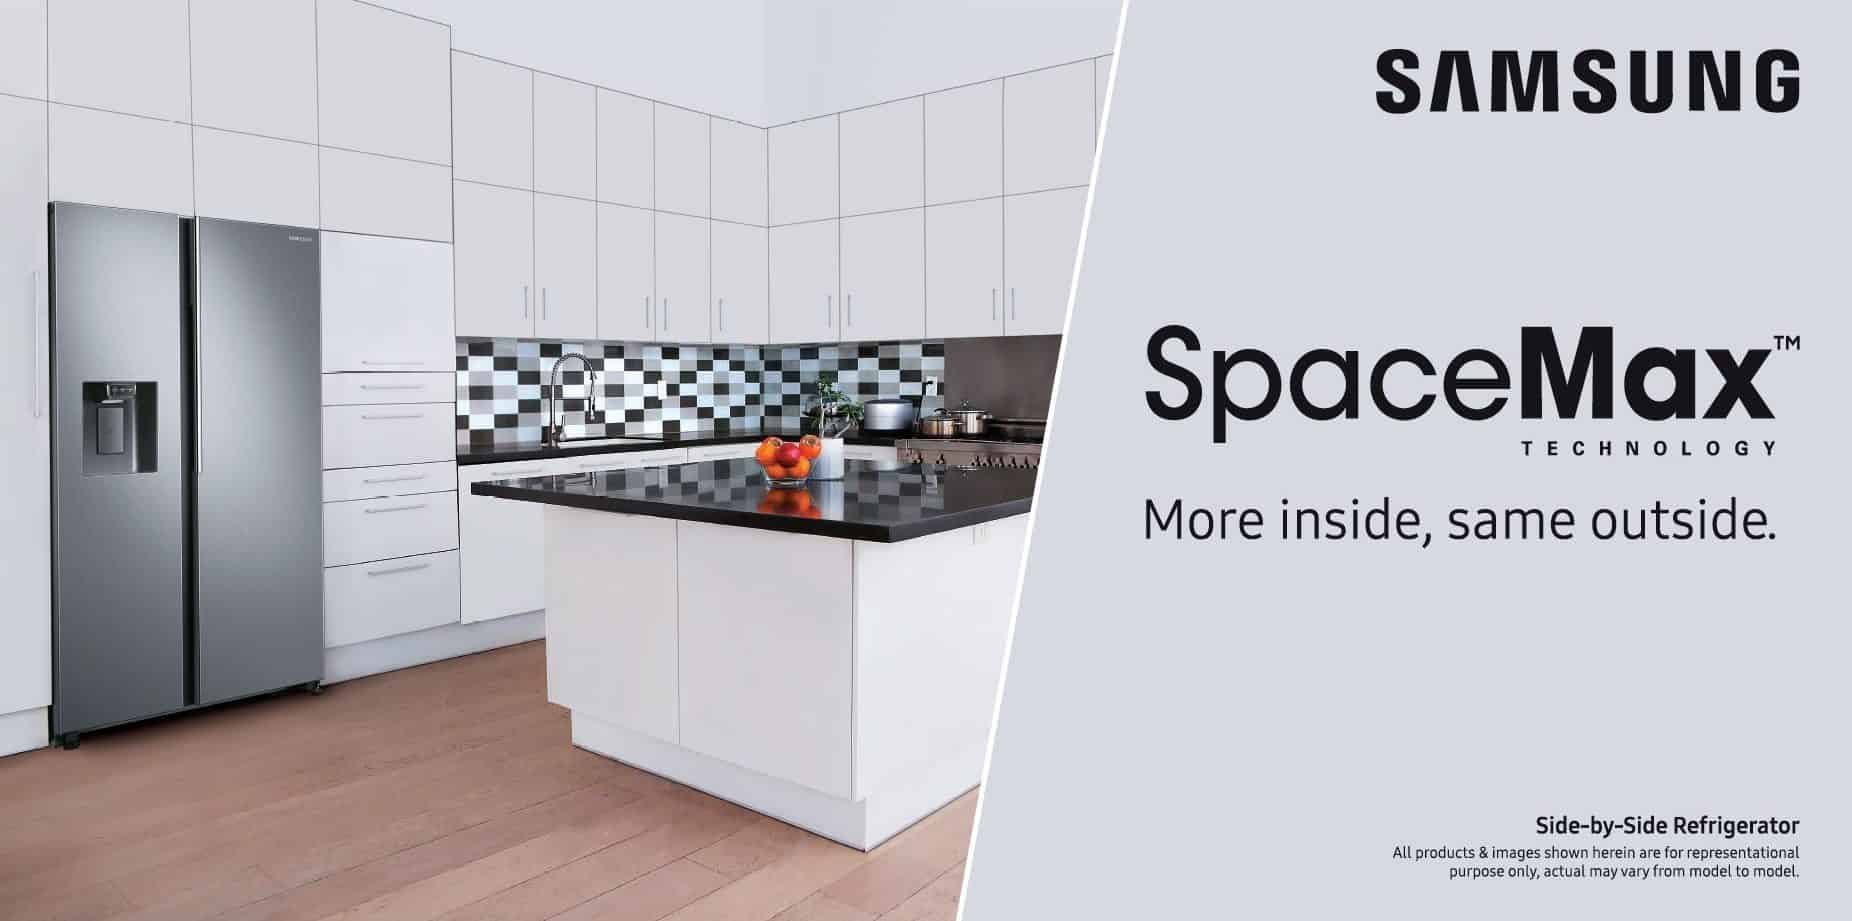 Samsung launches new SpaceMax series refrigerators